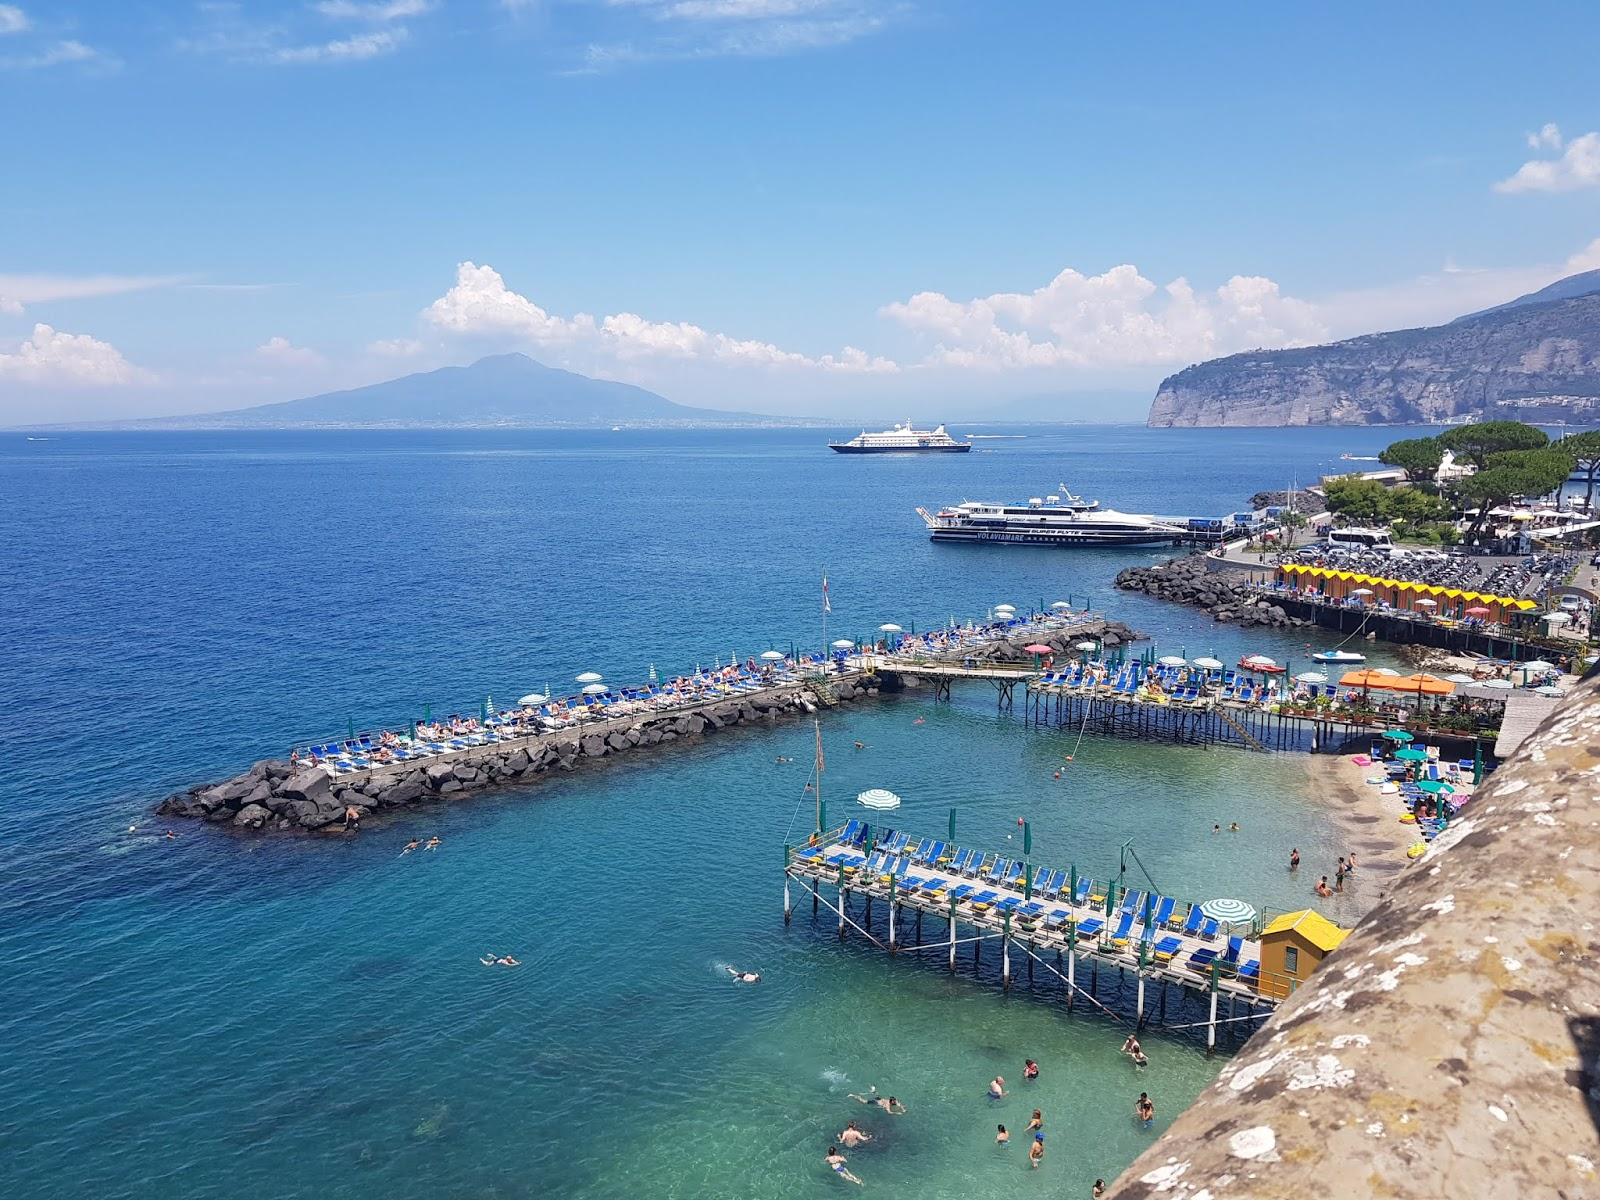 sorrento marinas visit sightseeing highlights